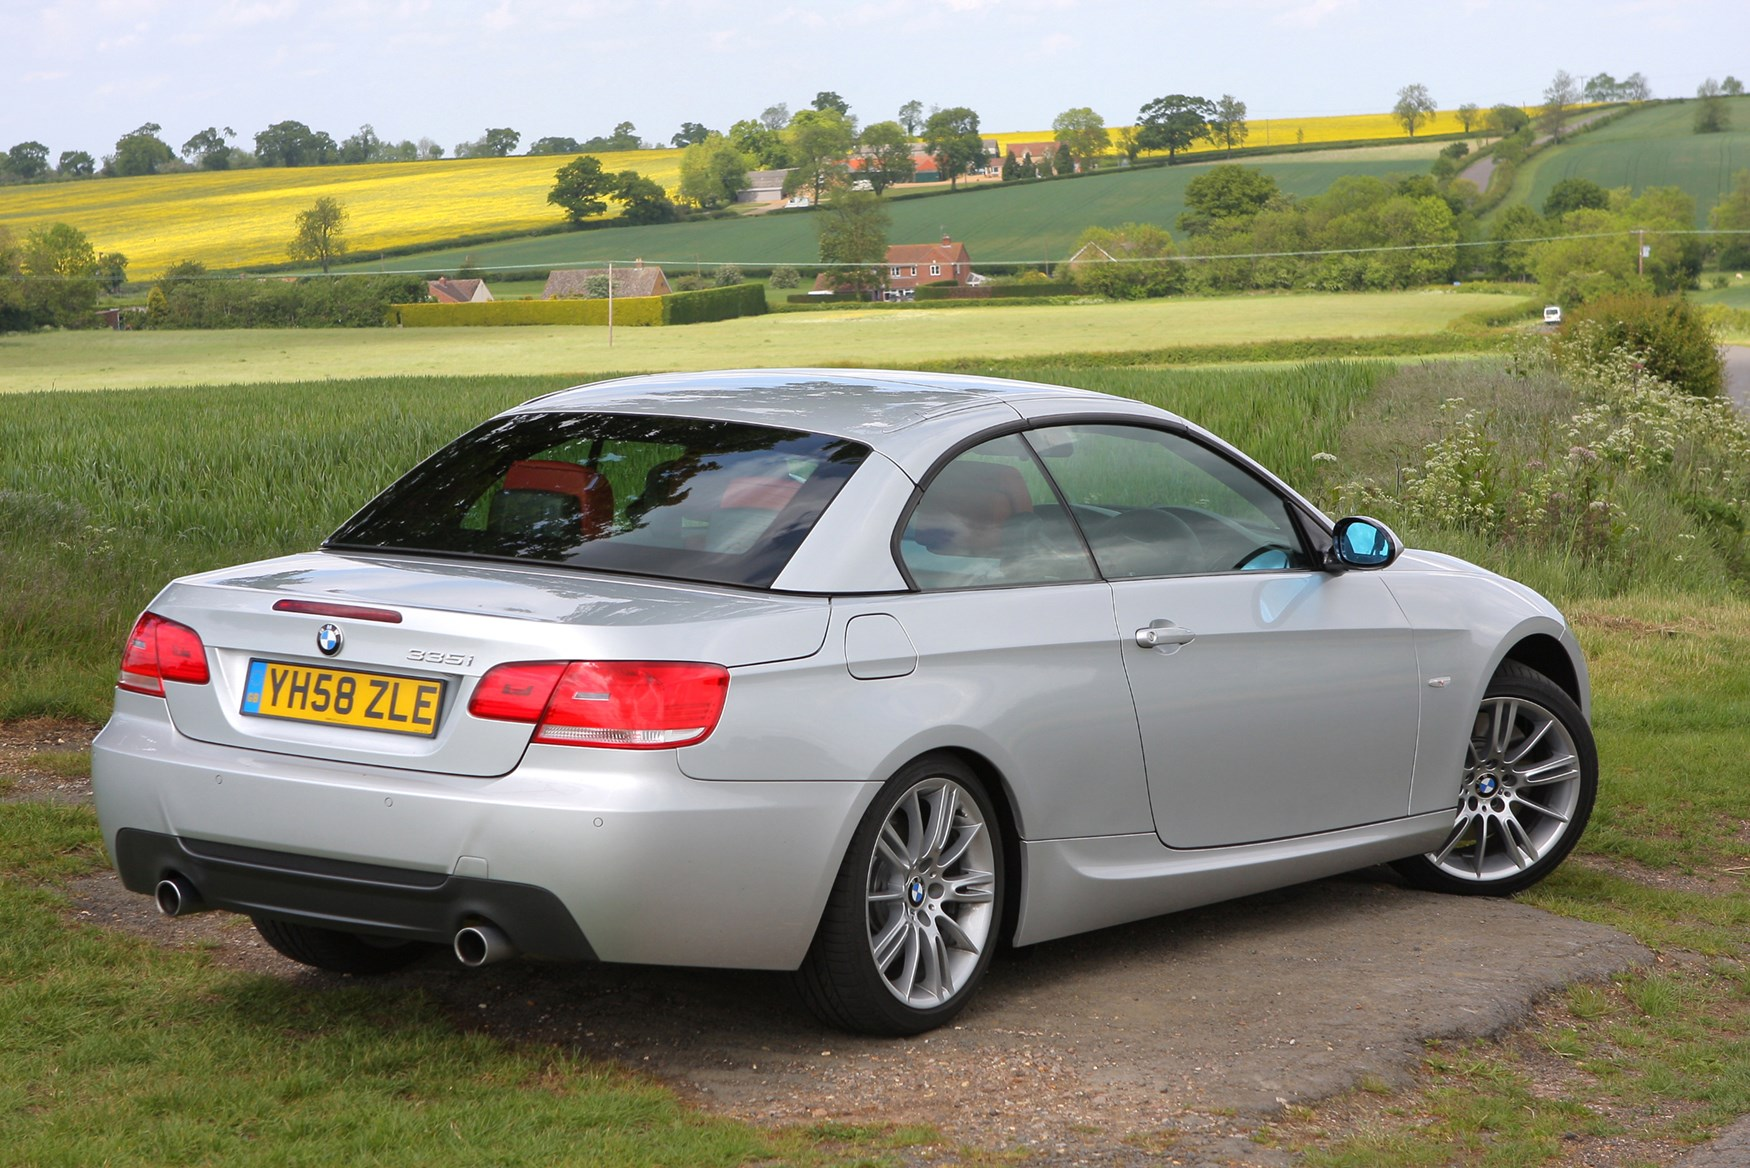 Bmw Financial Number >> BMW 3-Series Convertible Review (2007 - 2013) | Parkers